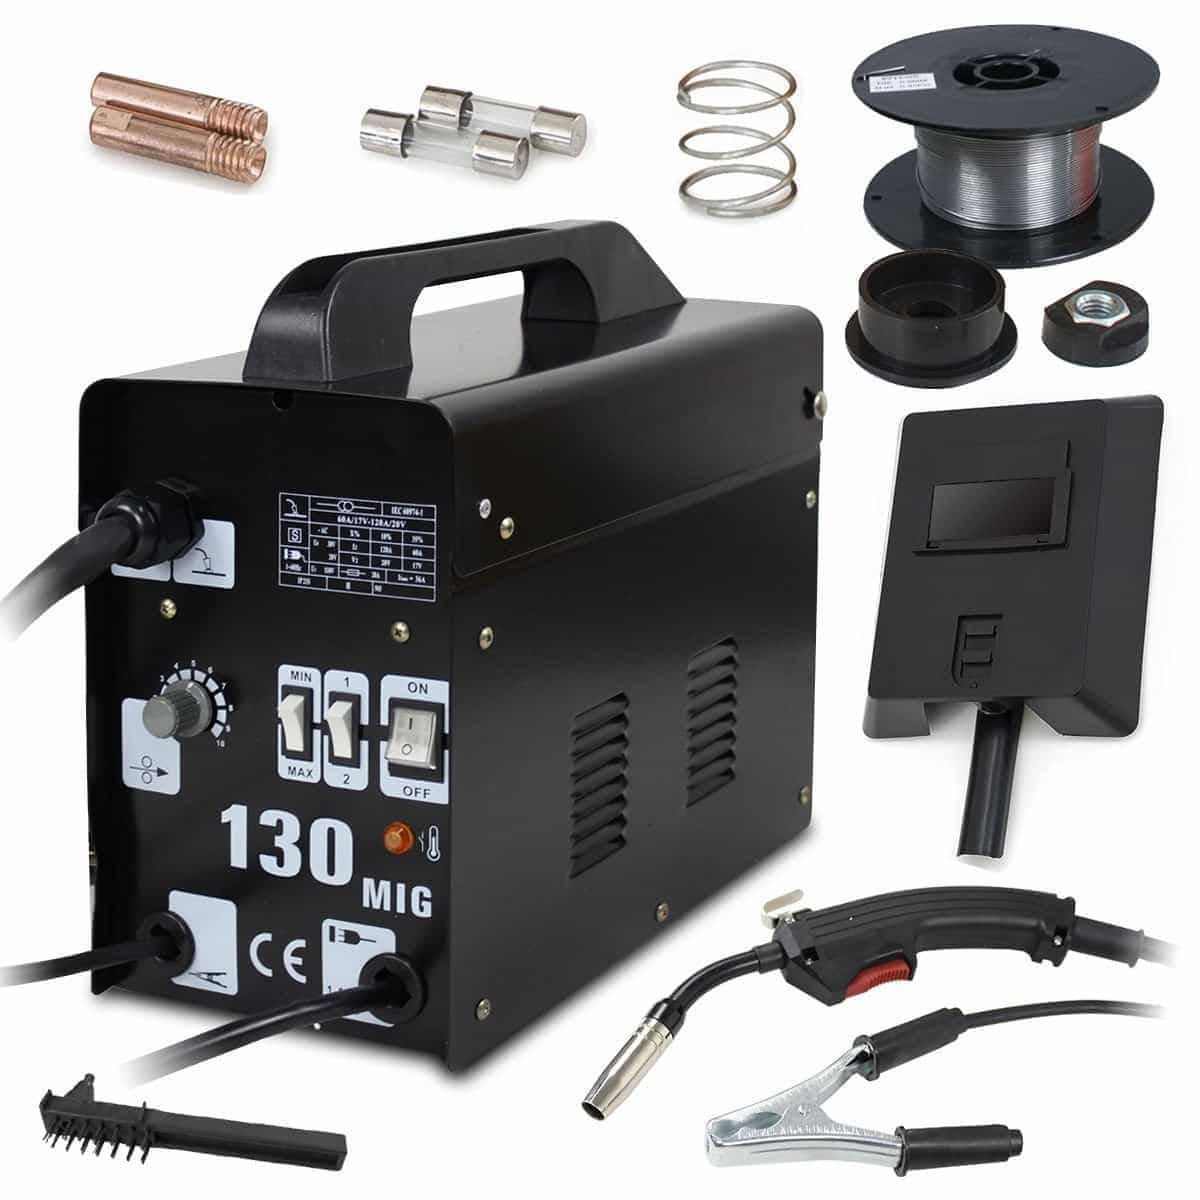 Hobart 500559 Sheet Metal Welder